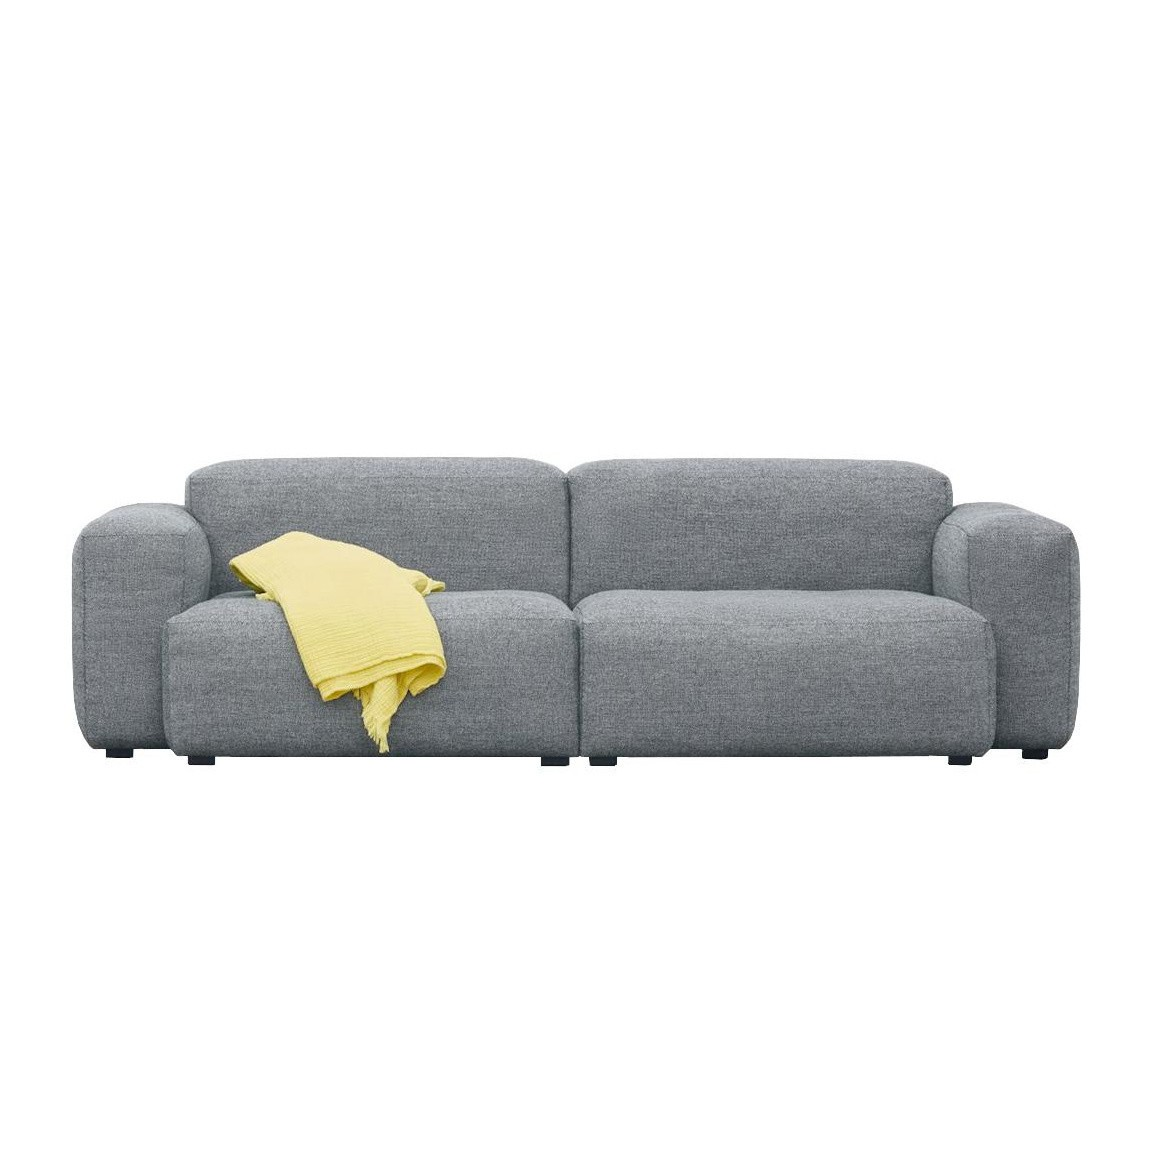 Hay Mags Soft 2 5 Seater Sofa Low Armrest Ambientedirect